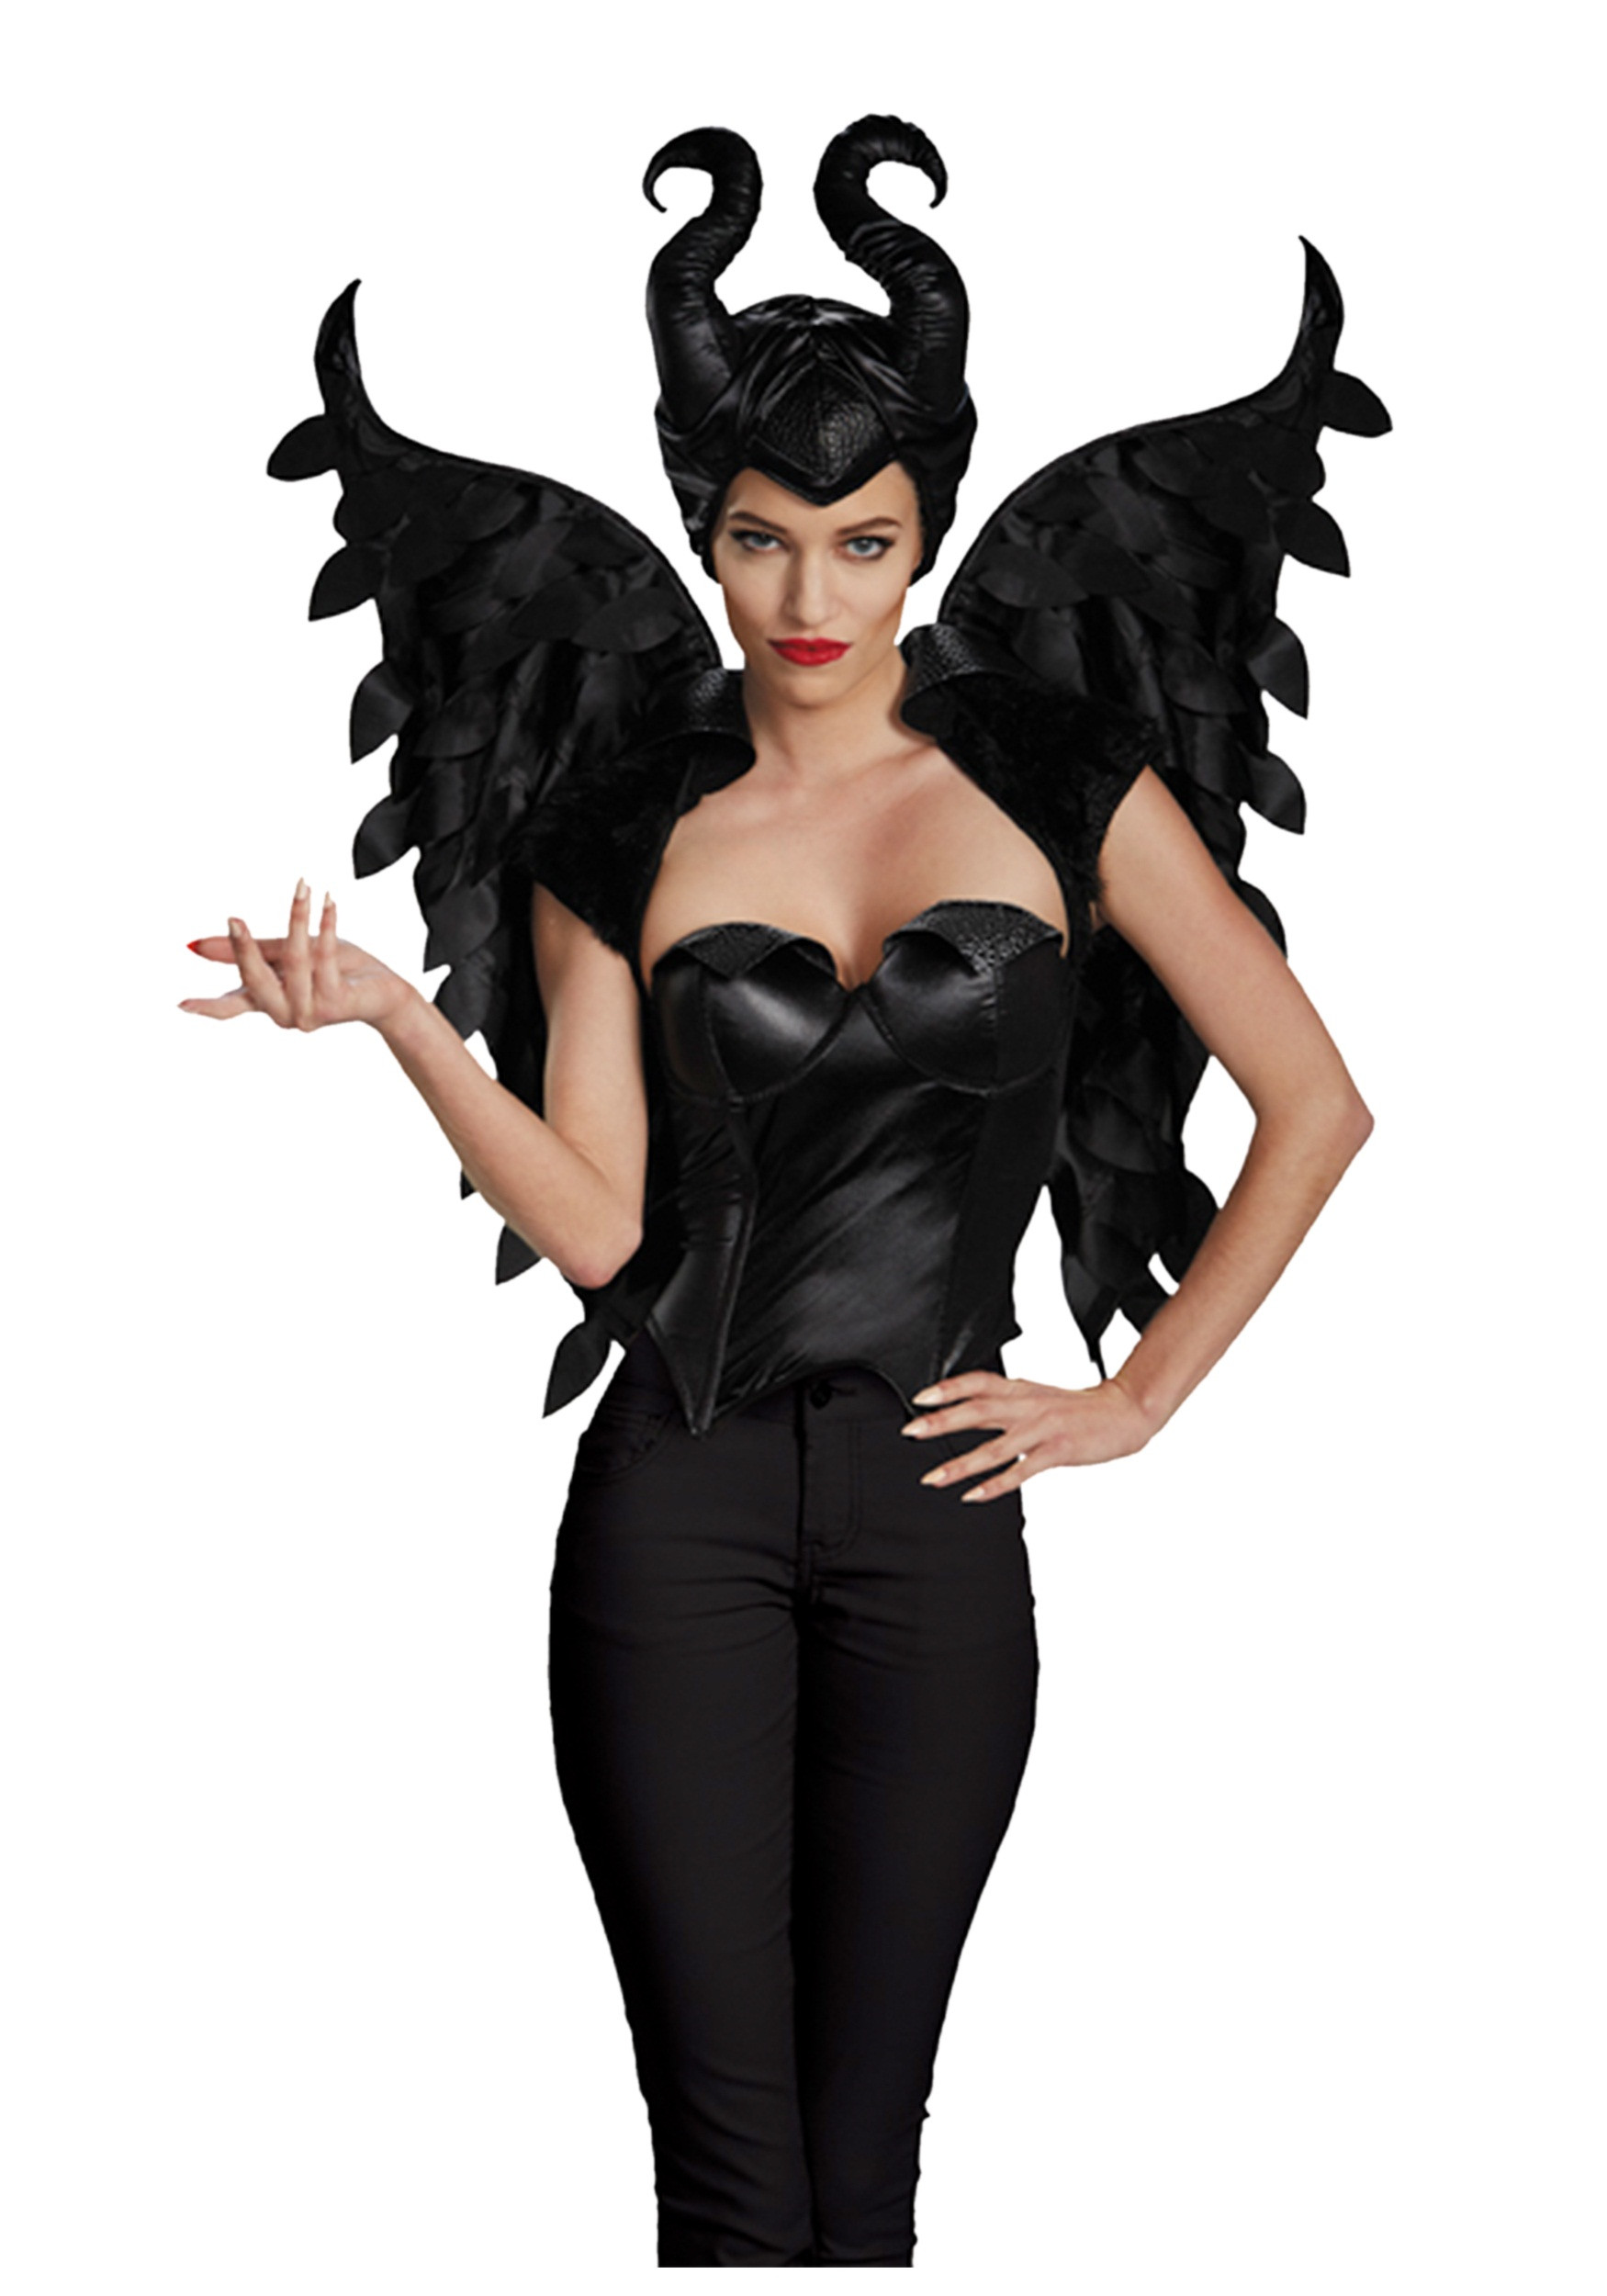 Best ideas about Maleficent DIY Costumes . Save or Pin Maleficent Wings Now.